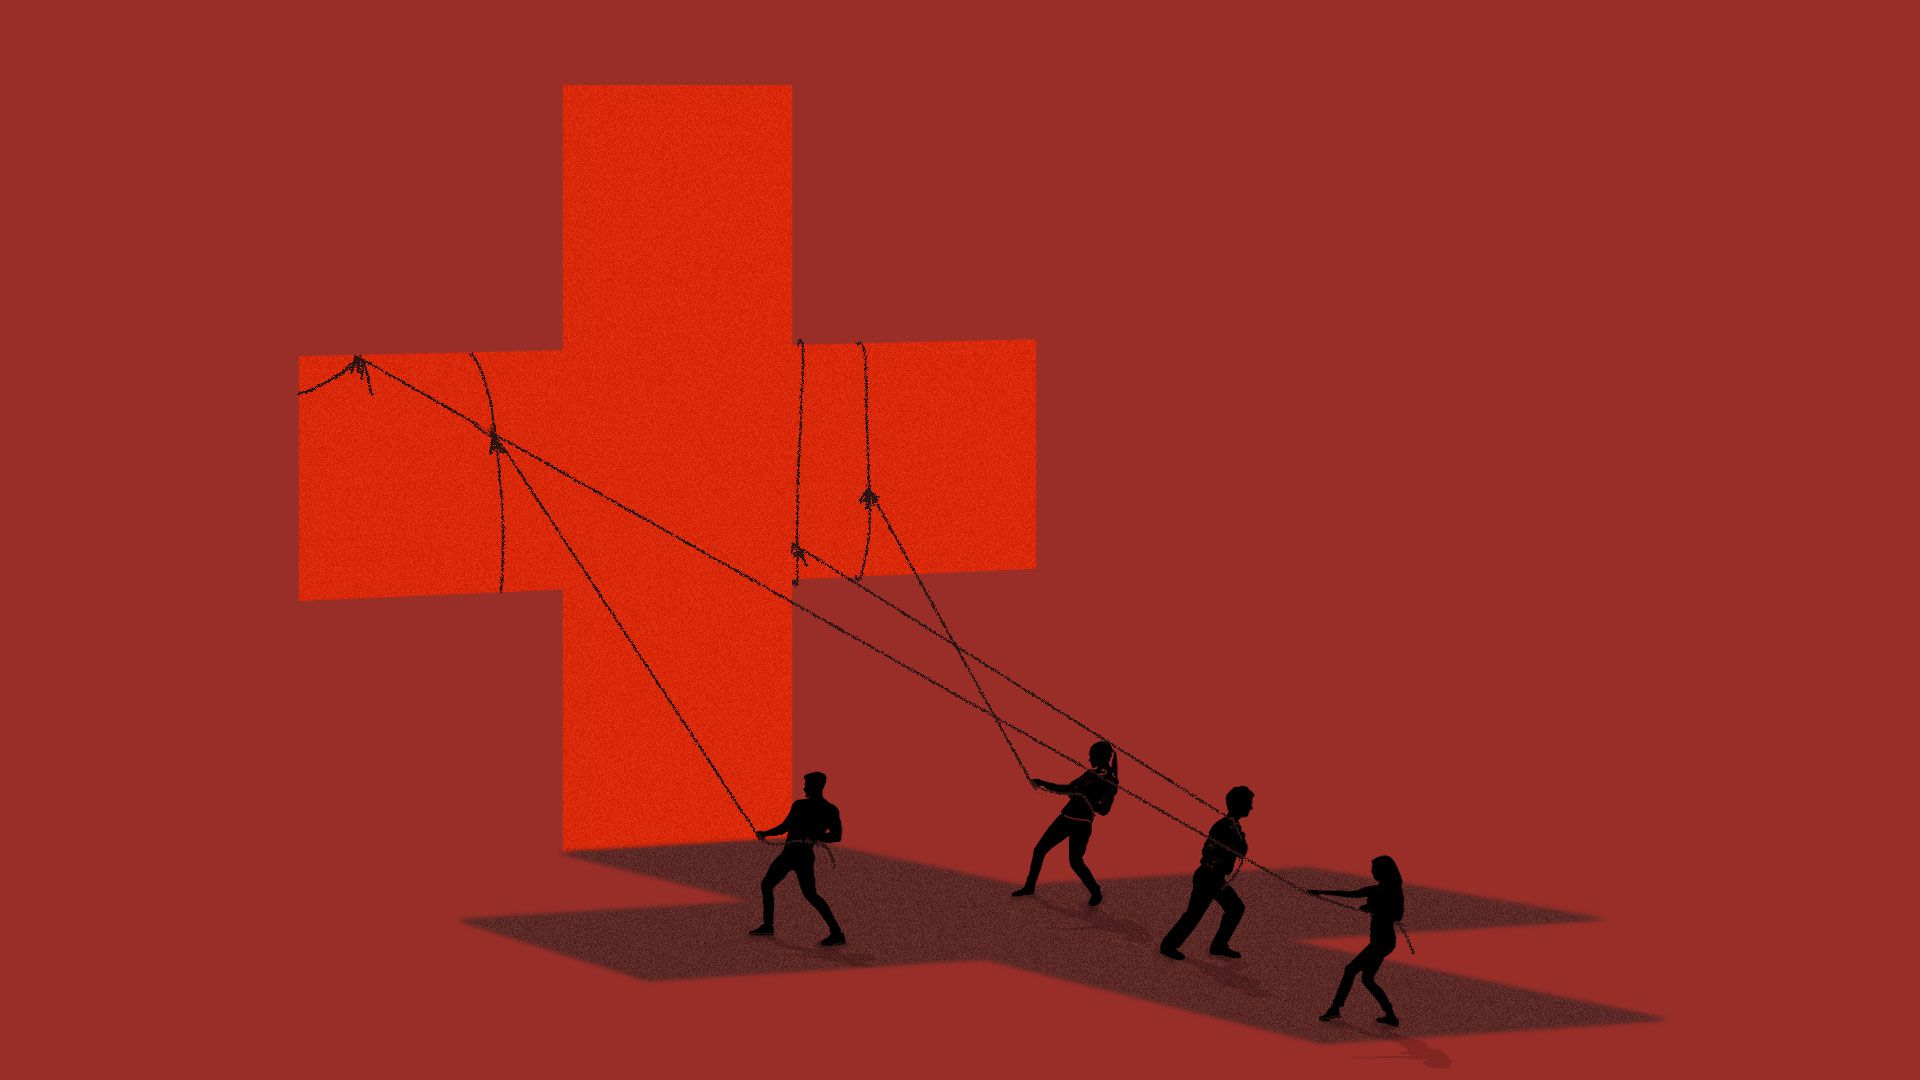 Illustration of figures pulling up a healthcare cross.